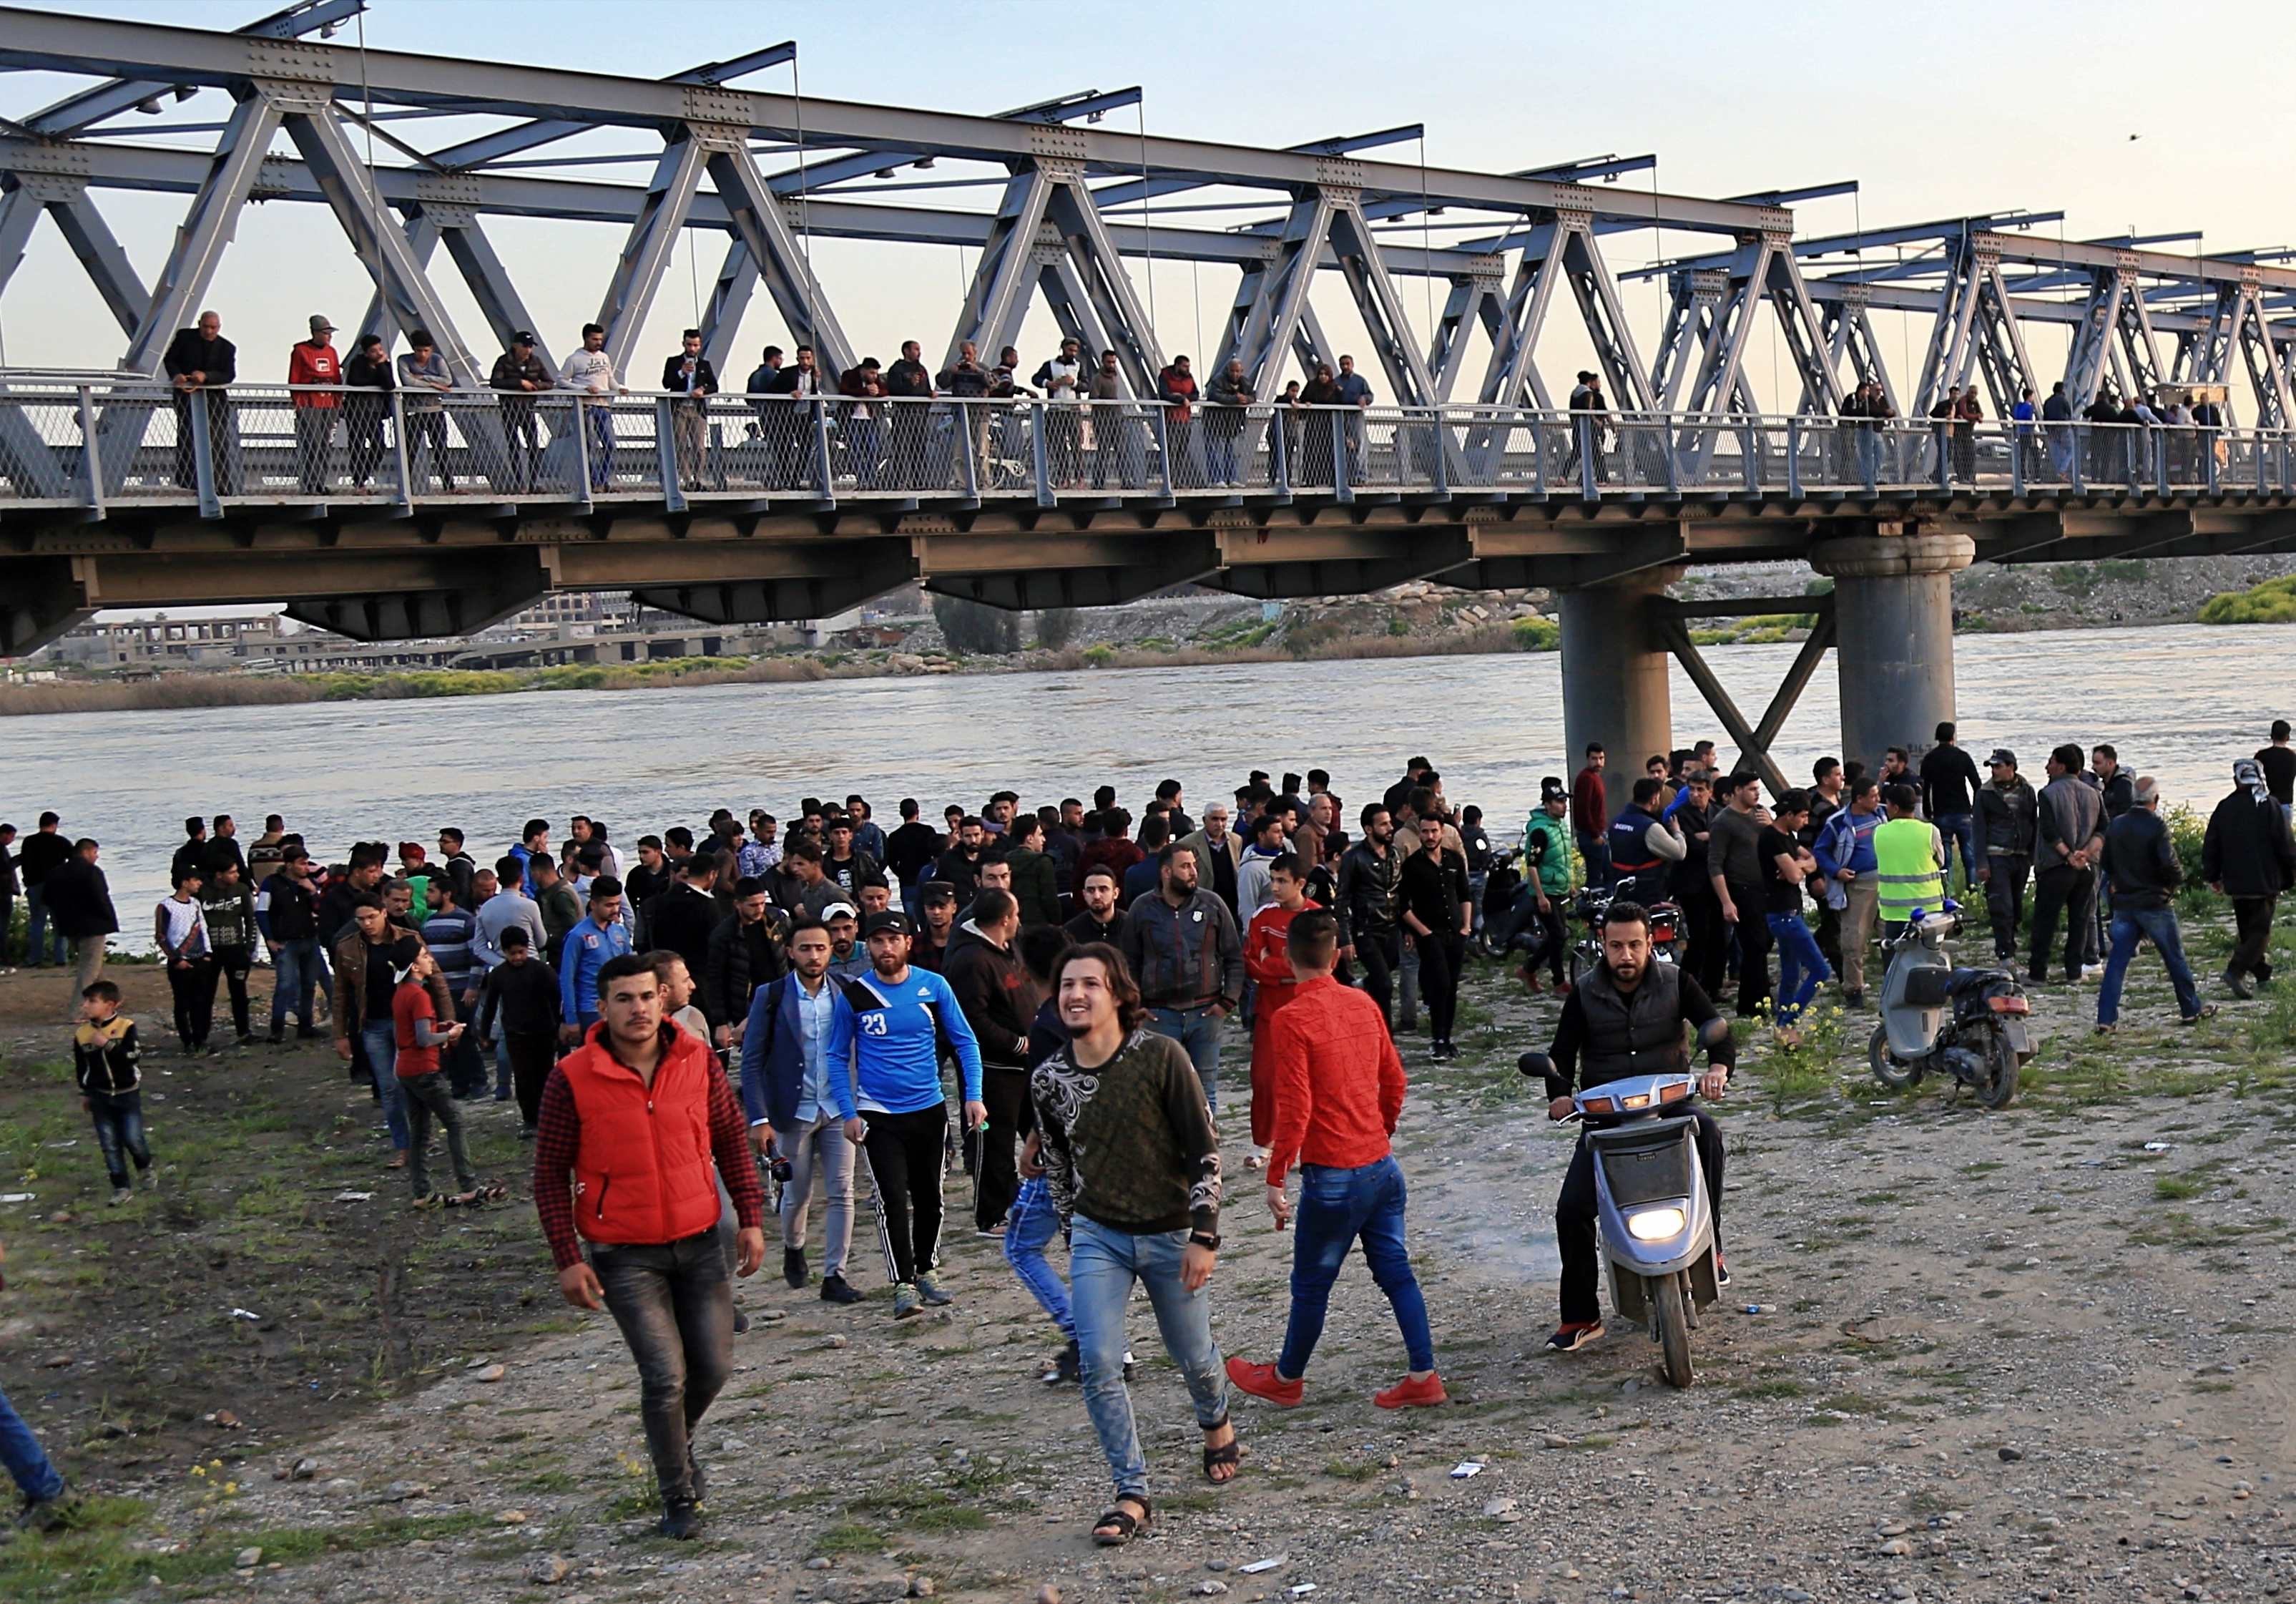 People and relatives of victims waiting on the bank of the Tigris river where the ferry sank in Mosul, Iraq, Thursday, March 21, 2019.